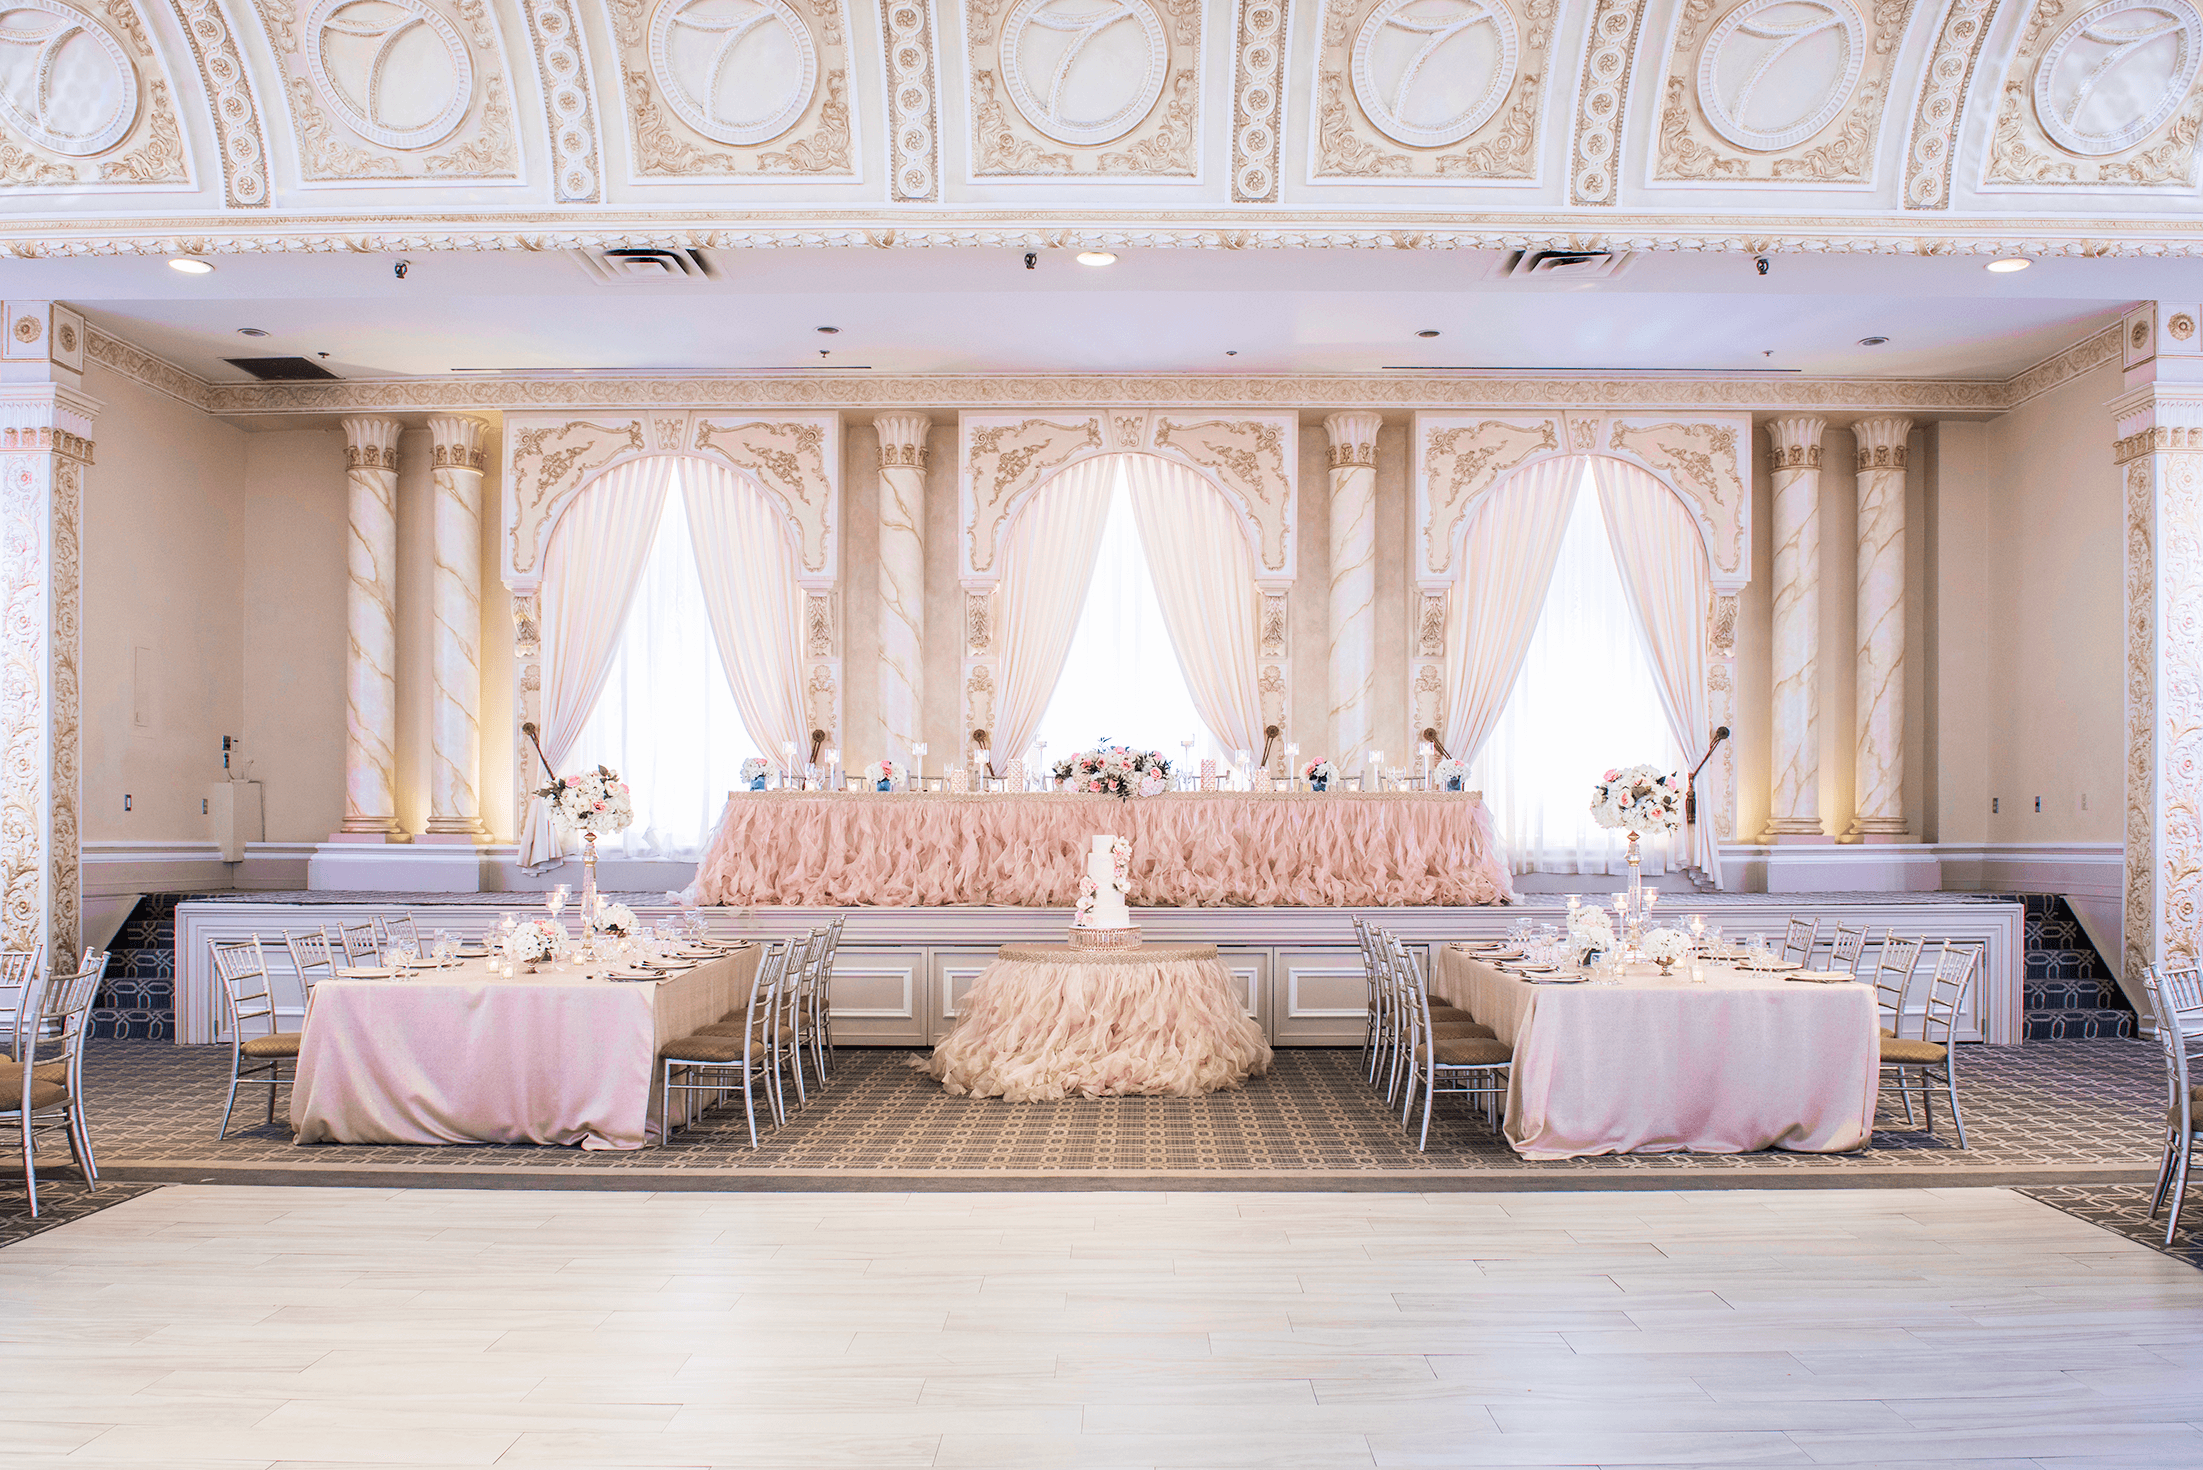 The pink-themed head table at a wedding in a ballroom with a dance floor.